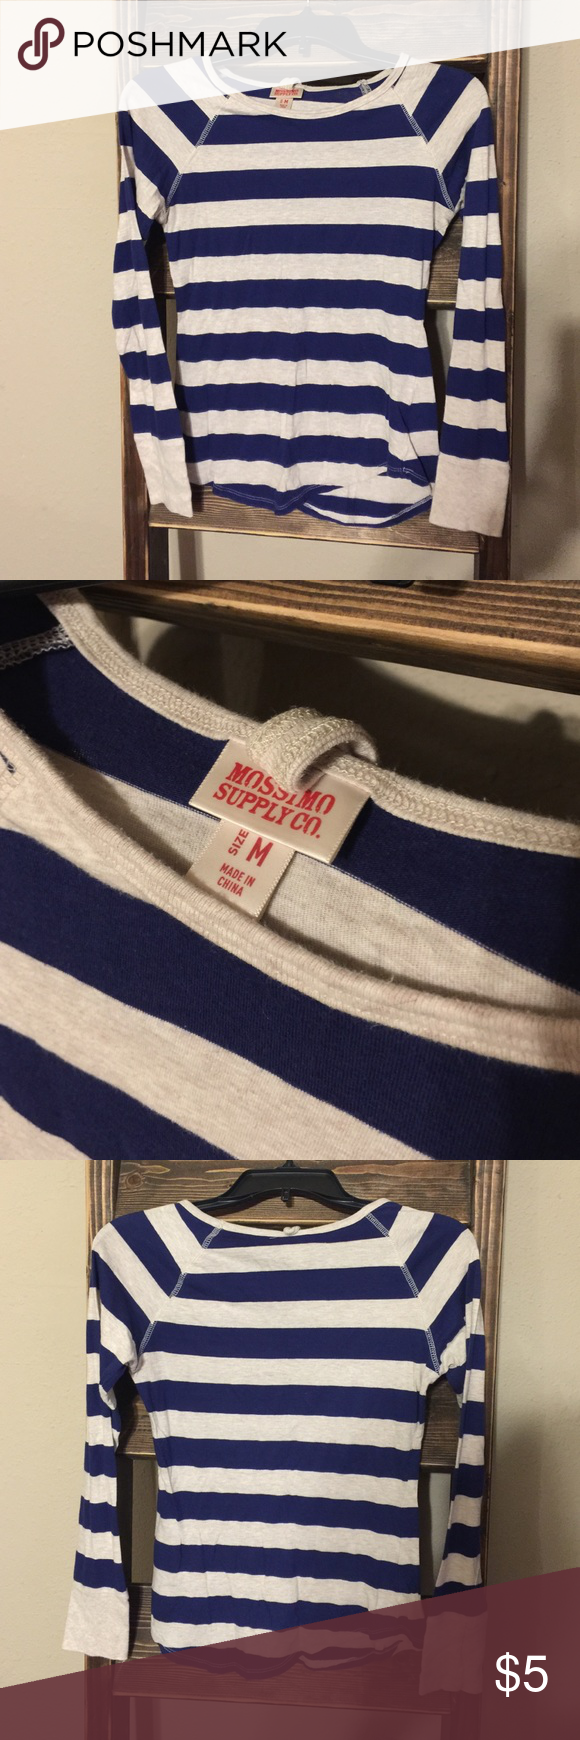 """Women Top Mossimo Medium Striped Long Sleeve shirt Bust 15 and length 22.5"""" Preowned but in Good, clean condition. No tears, rips or stains. Comes from smoke free home. Mossimo Supply Co Tops Tees - Long Sleeve"""